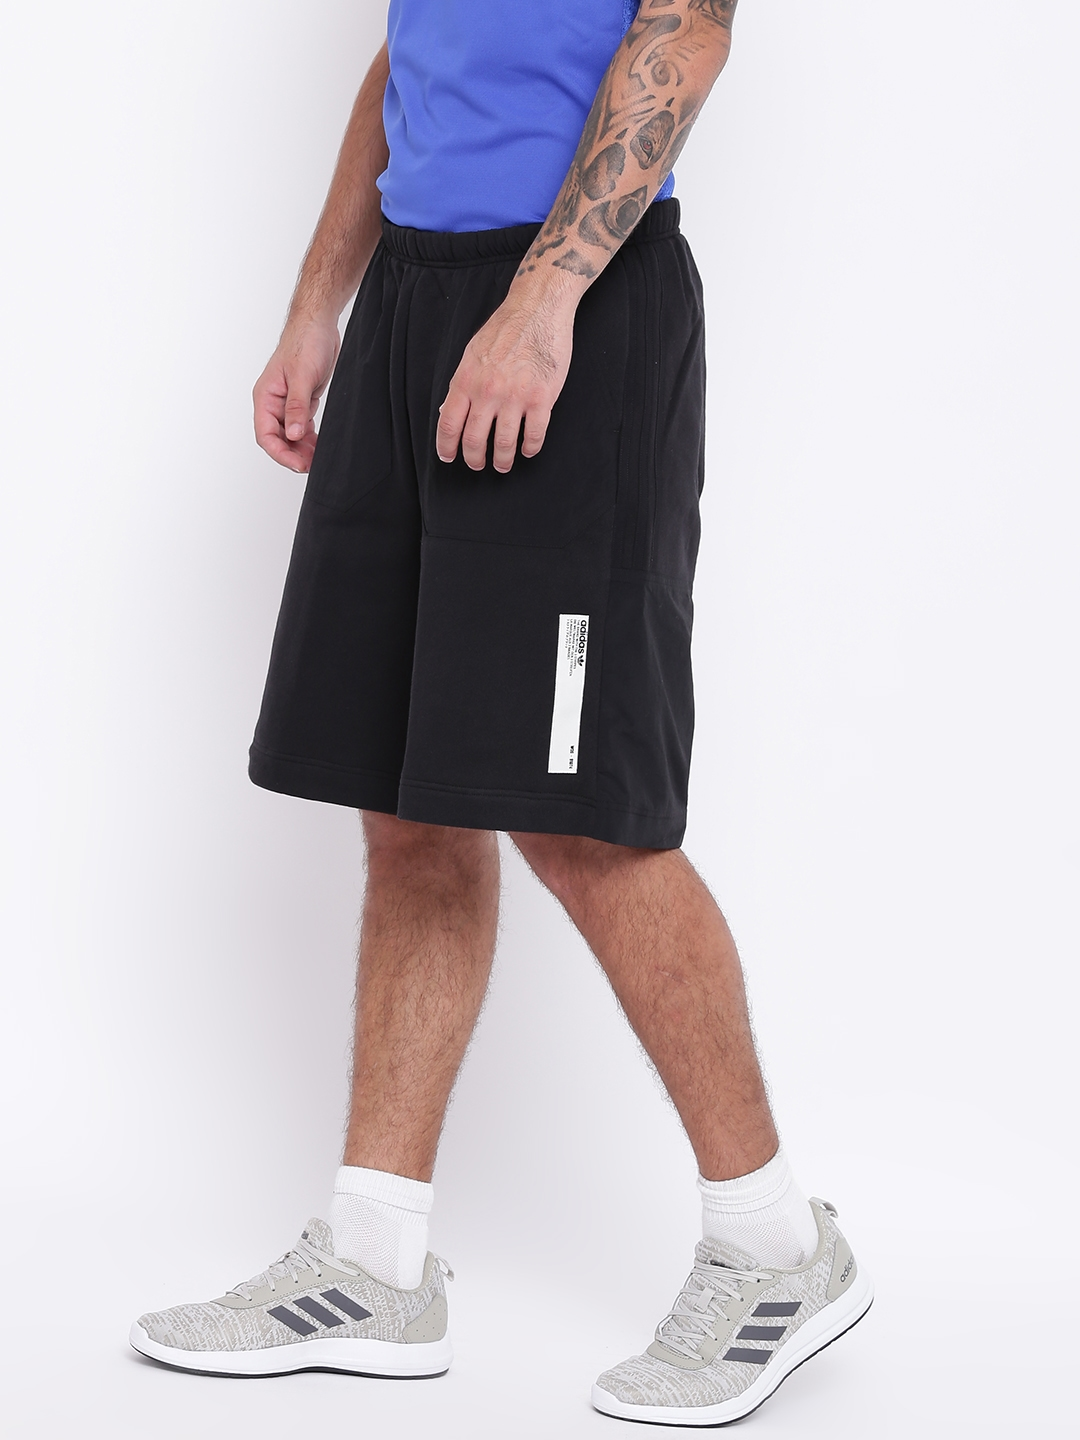 1152cbc51 Buy Black Solid Nmd Sports Shorts - Shorts for Men 7101446